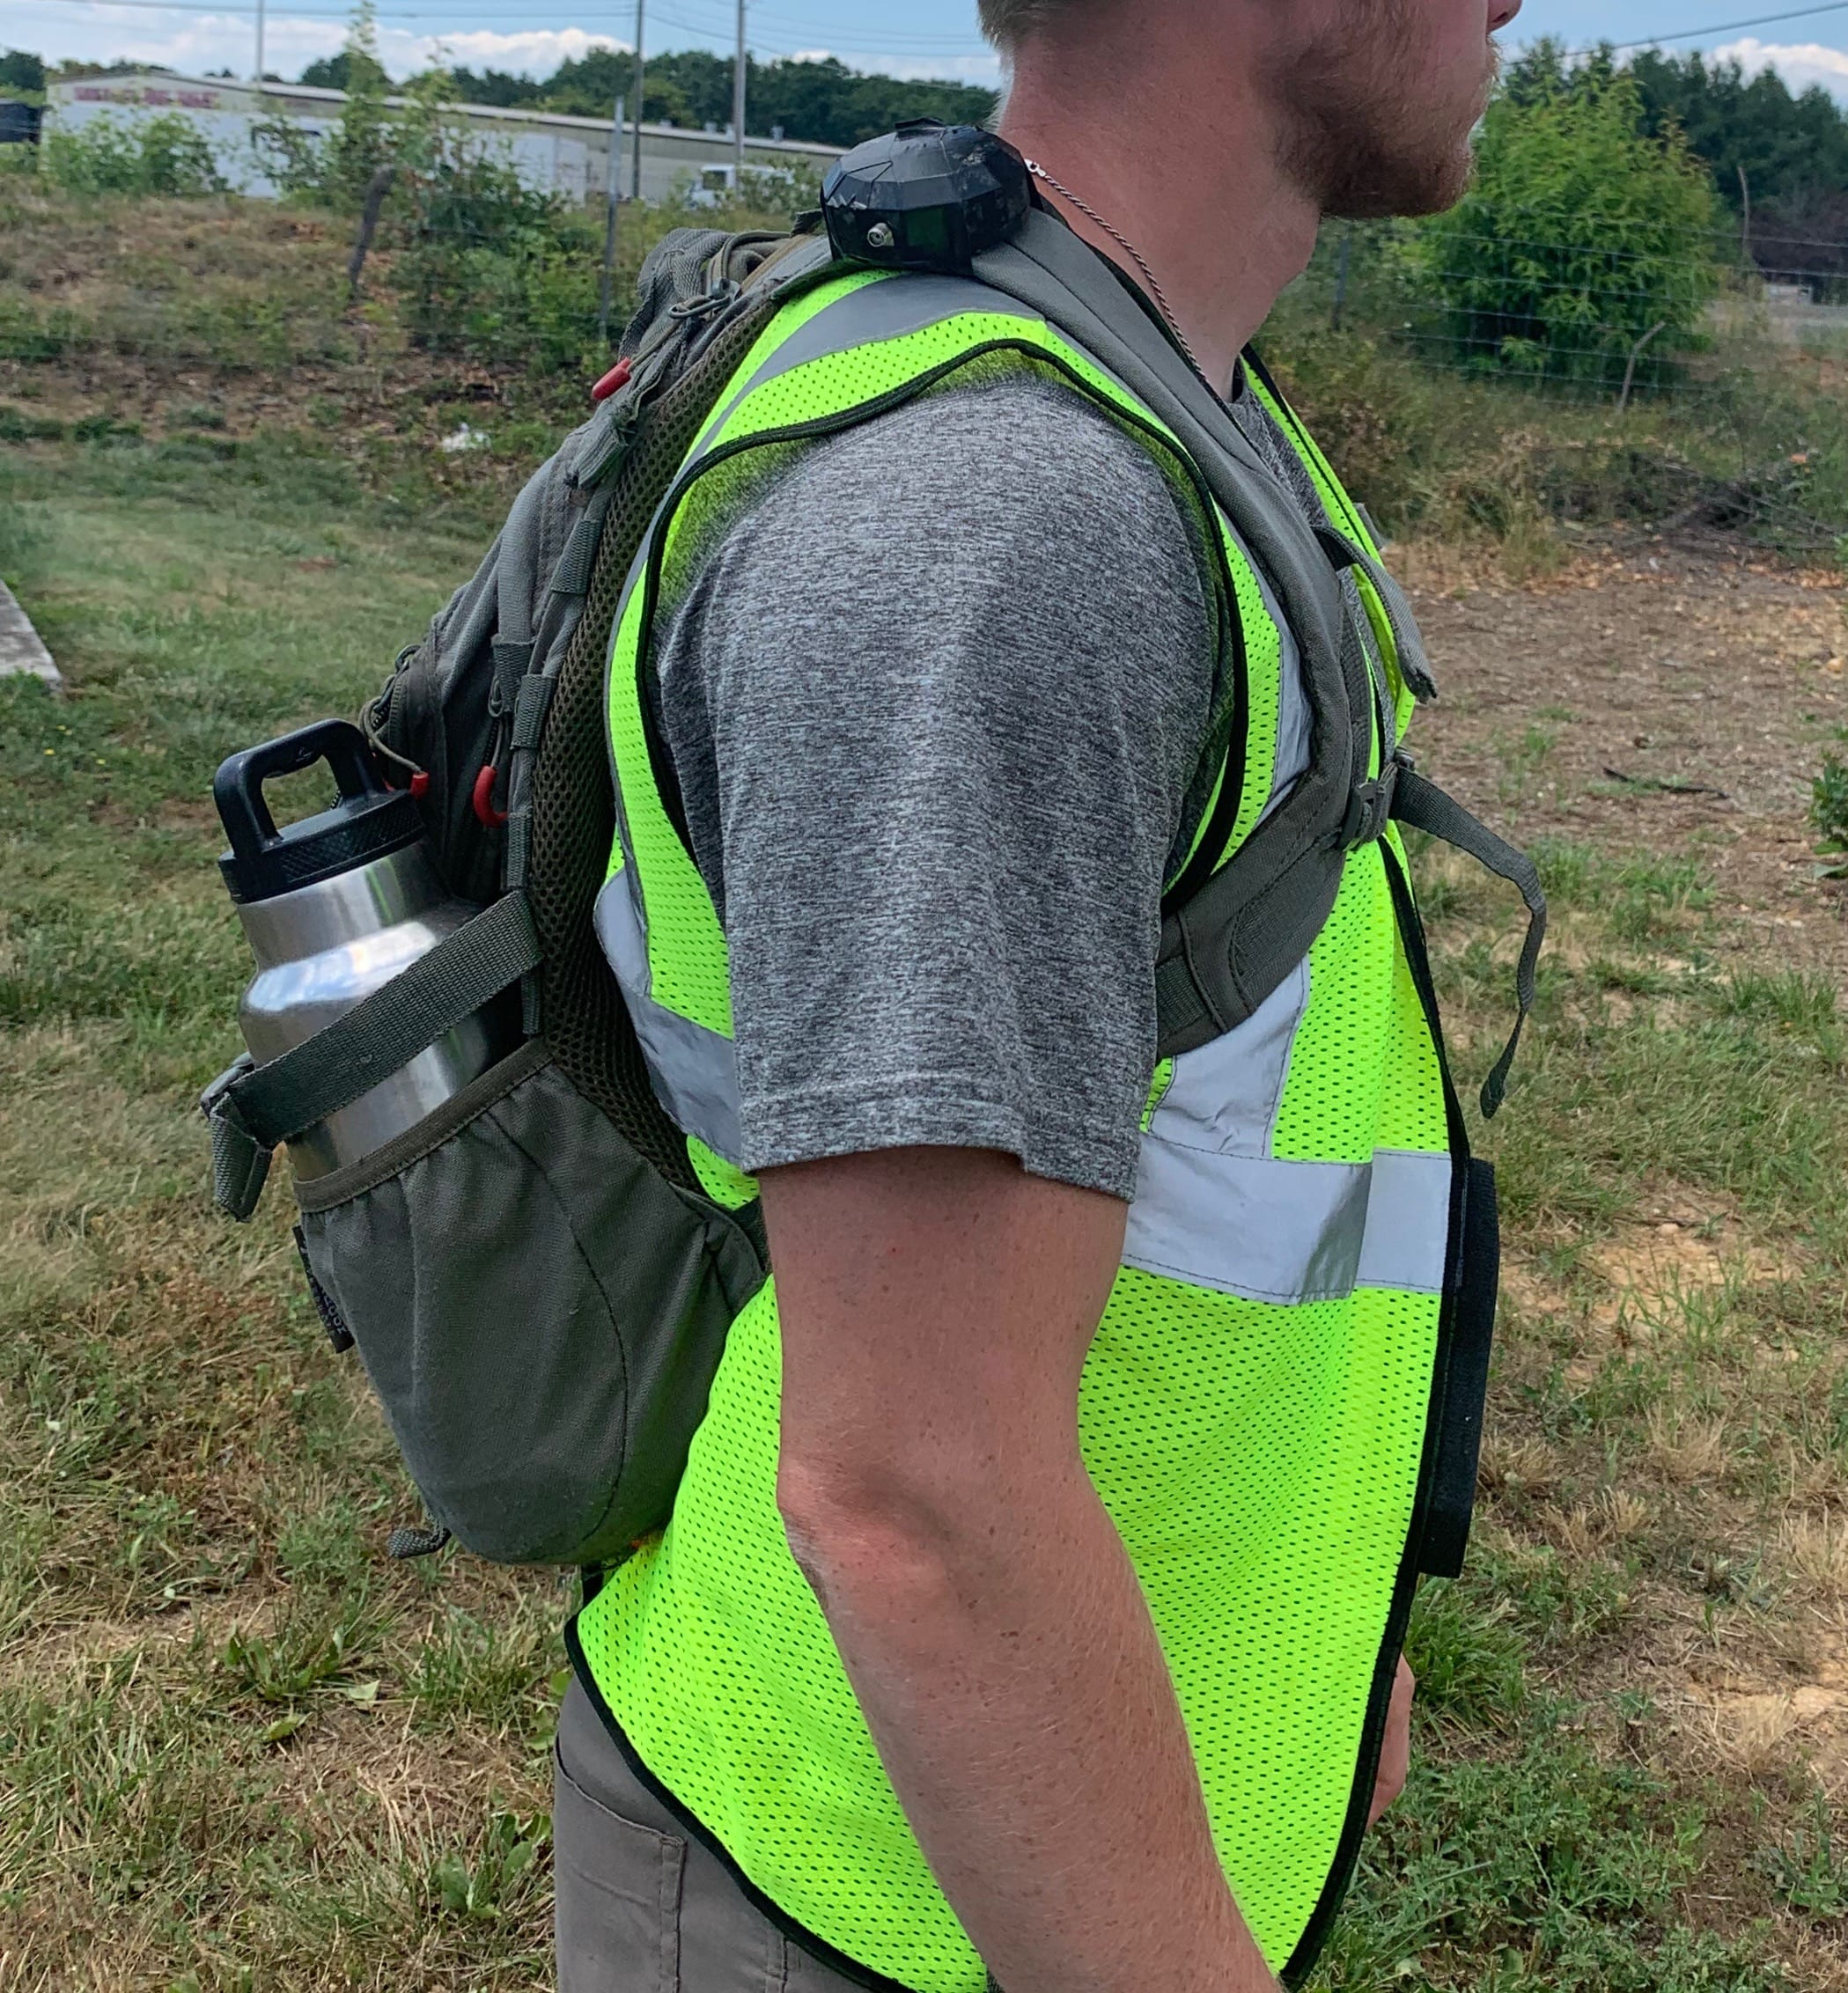 ESI shows how they use Arrow GNSS receiver mounted to a backpack, for wetland delineations mapping projects